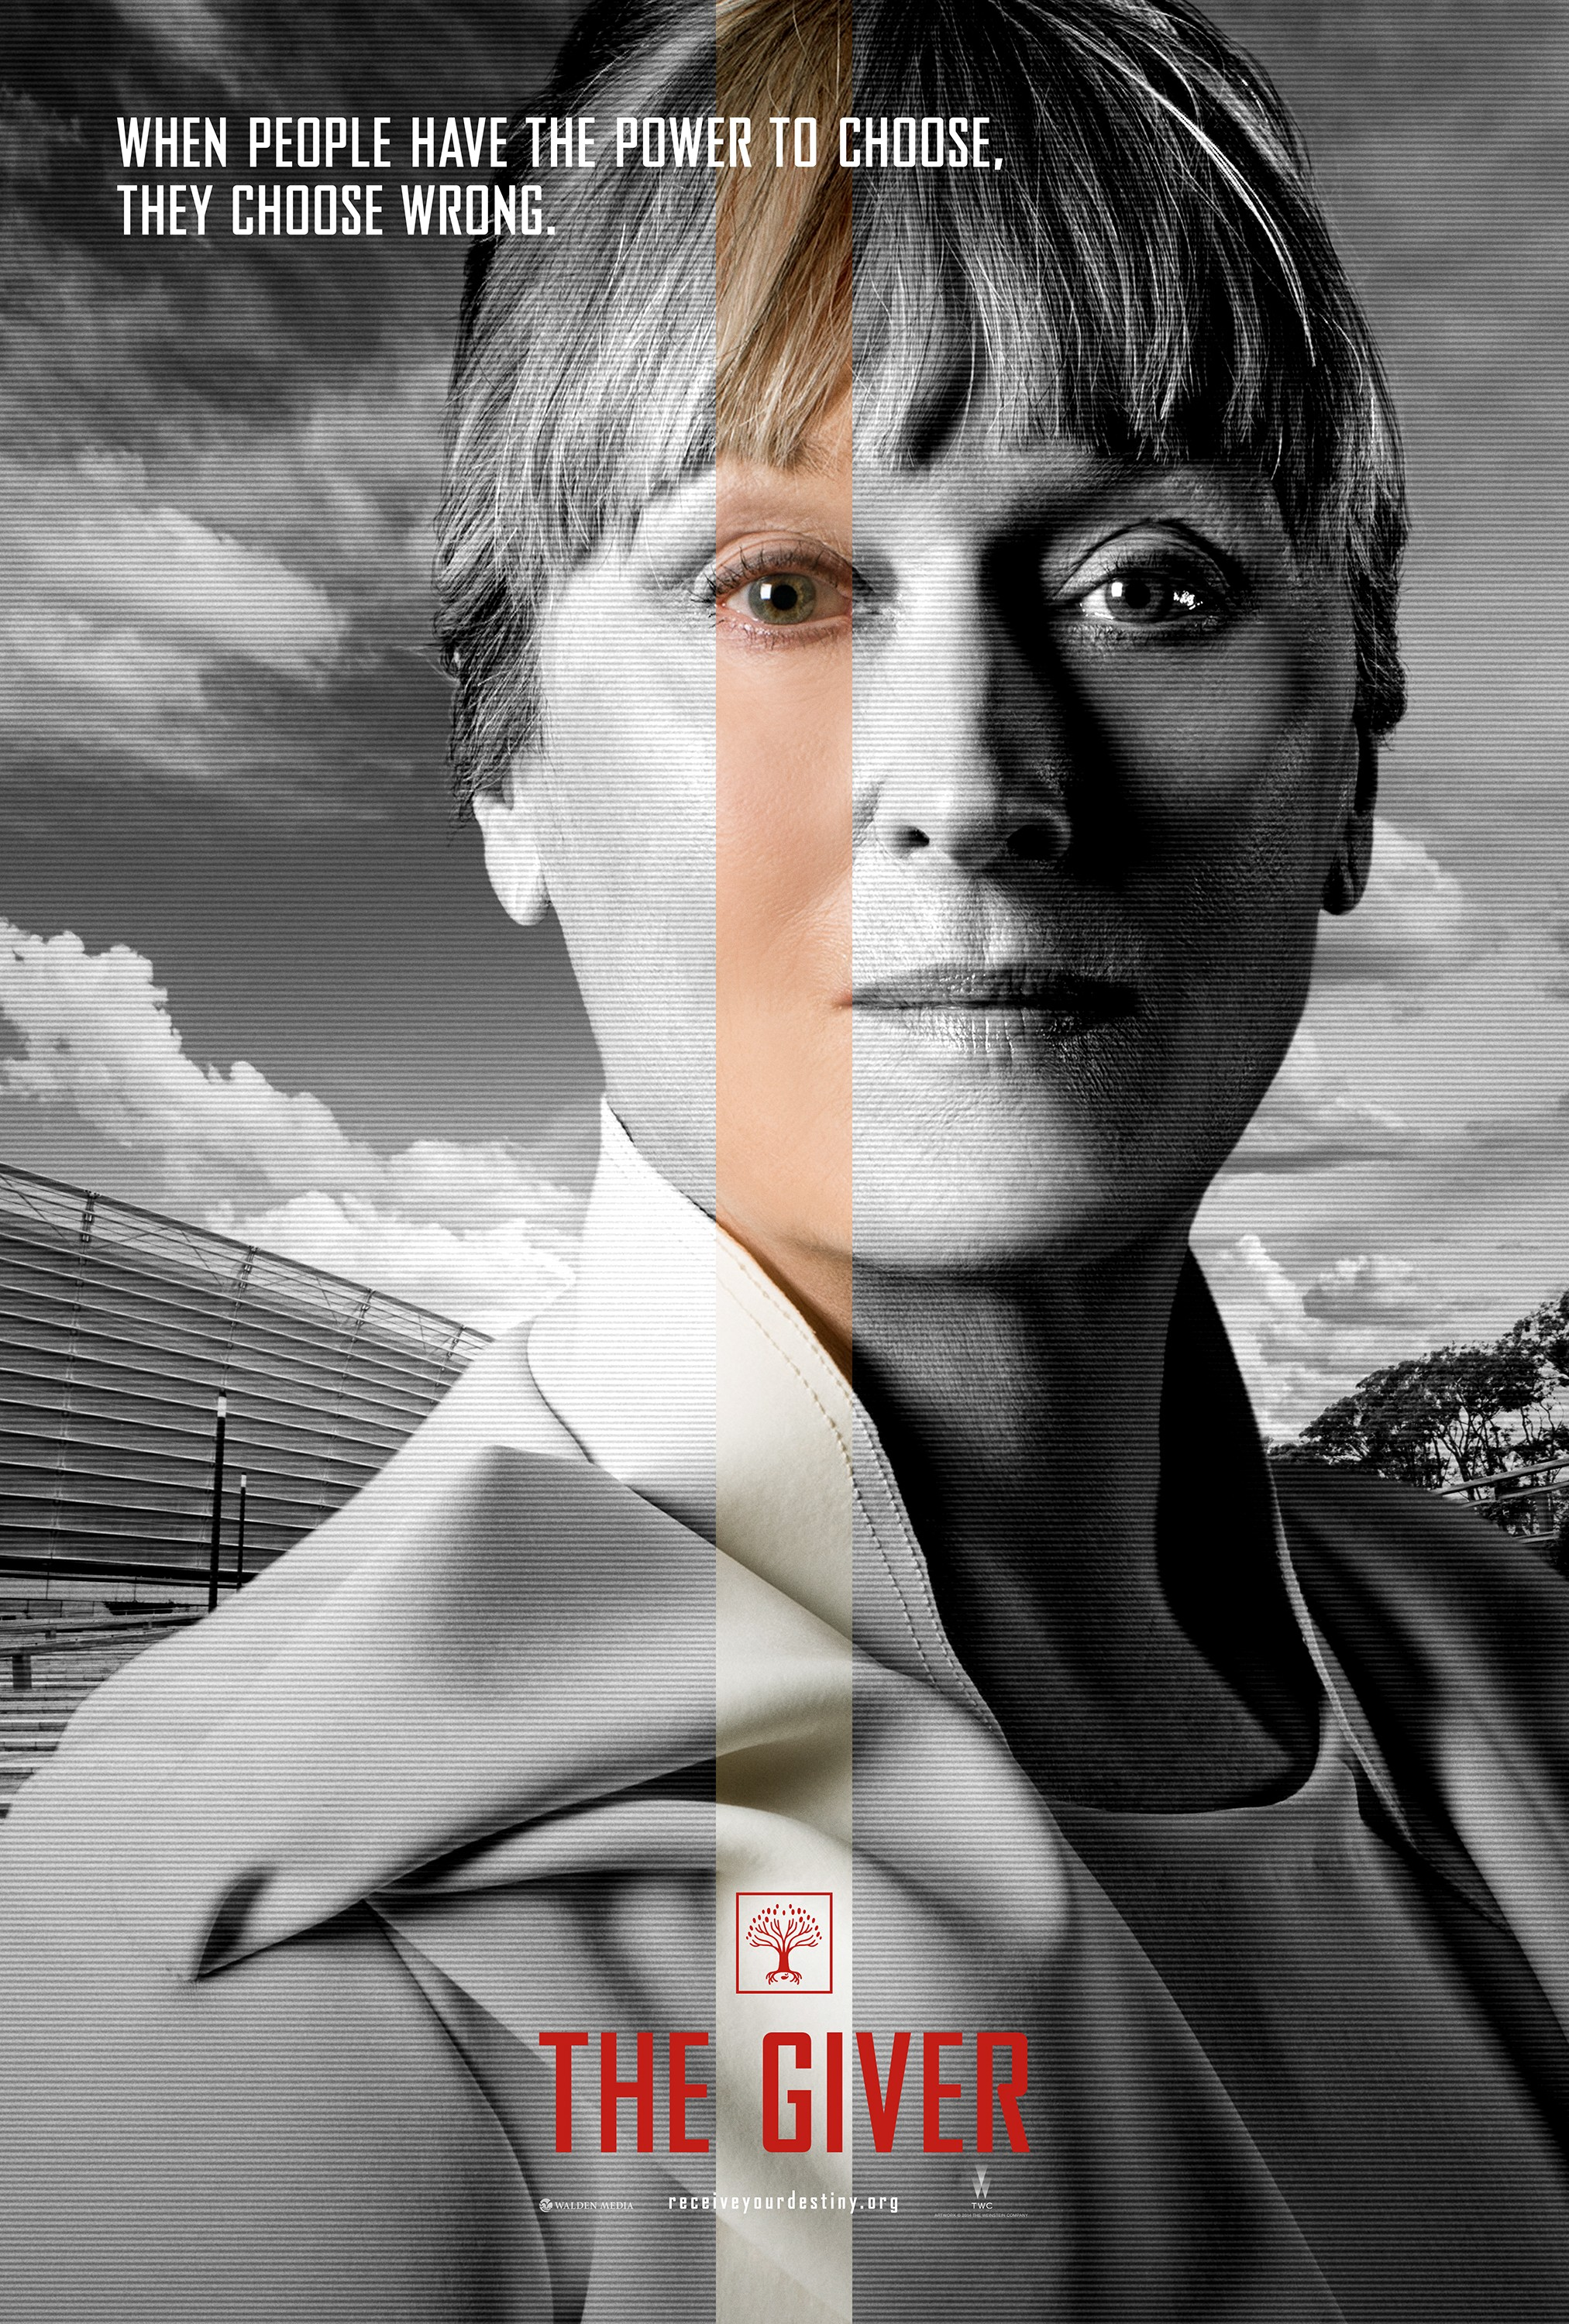 The Giver-Official Poster Banner PROMO XXLG-23MAIO2014-01